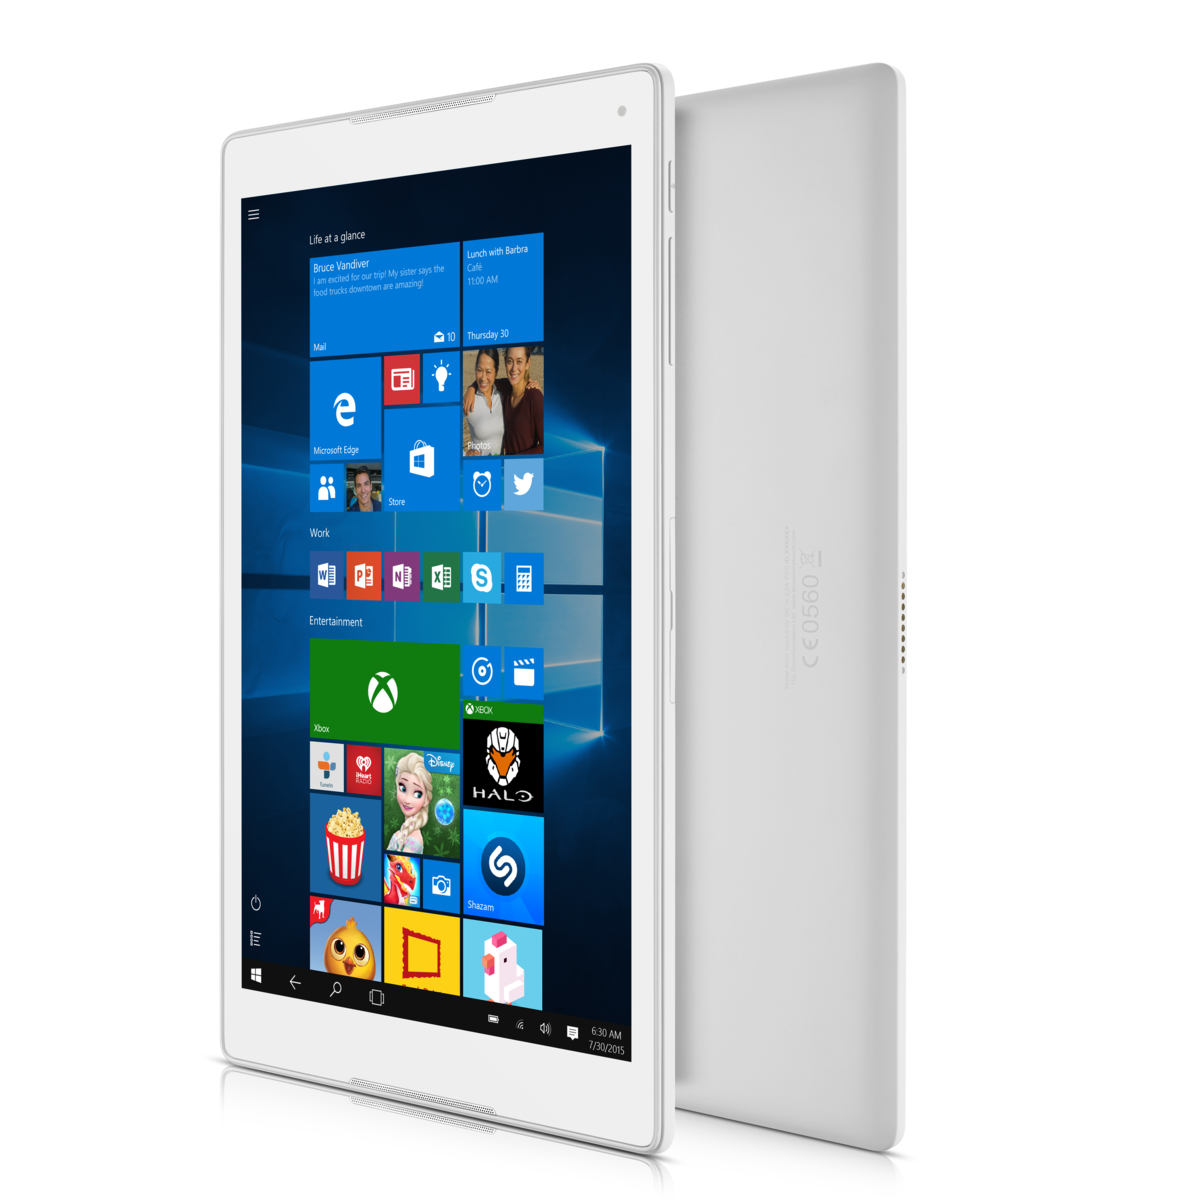 ALCATEL Plus 10 25,65 cm Windows 10 Tablet LTE weiß #wieneu